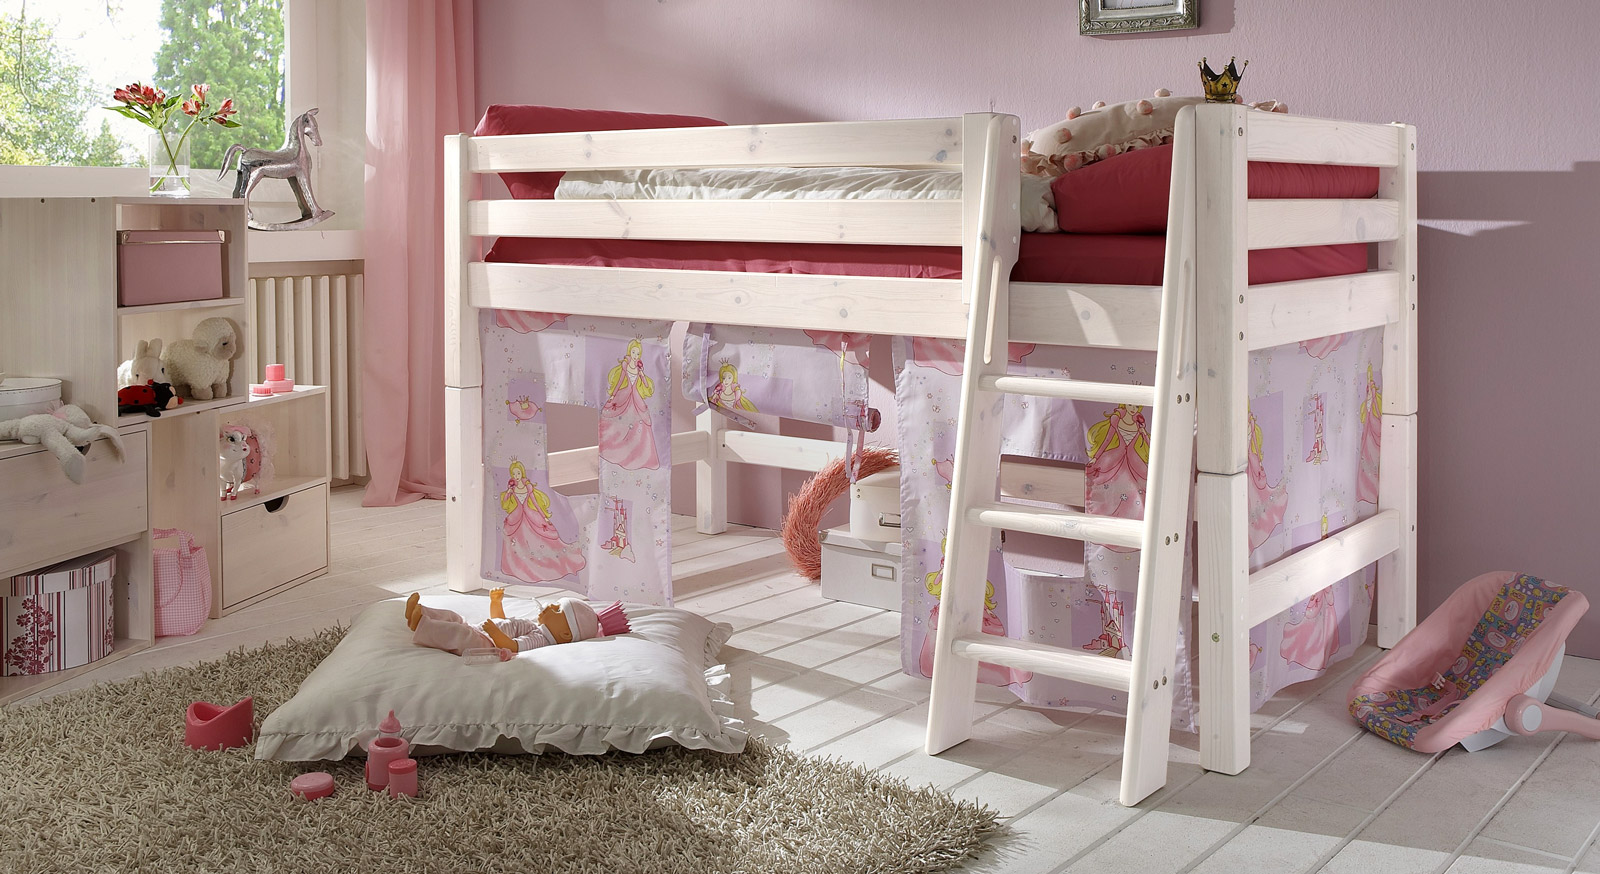 kinderzimmer komplett hochbett kinder prinzessin gunstig. Black Bedroom Furniture Sets. Home Design Ideas